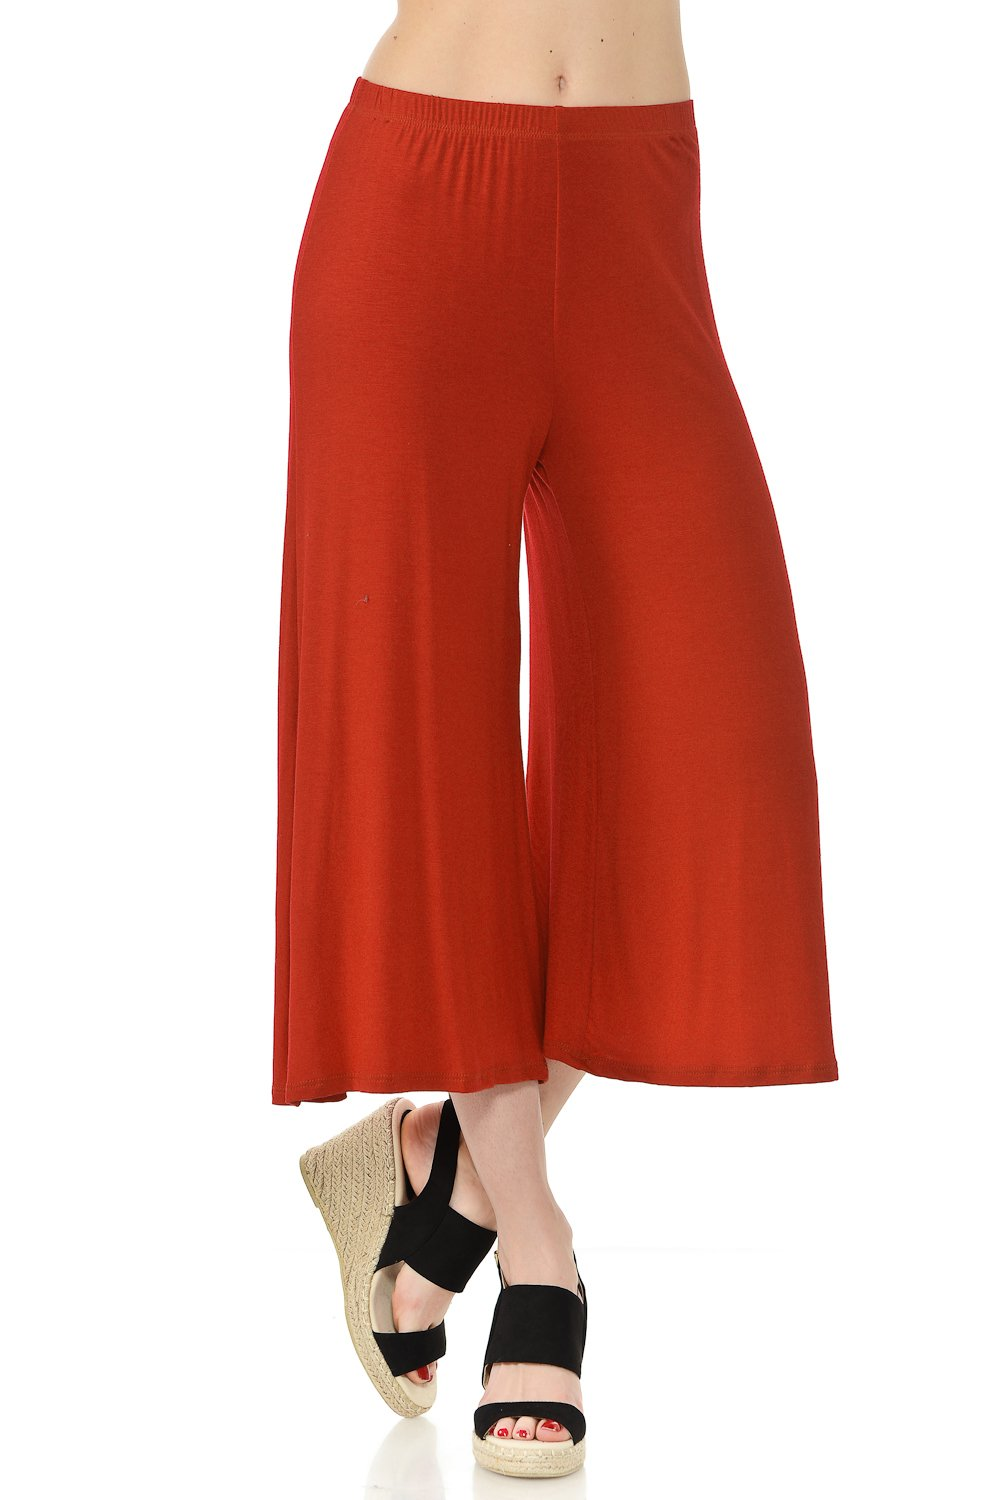 iconic luxe Women's Elastic Waist Jersey Culottes Pants X-Large Rust